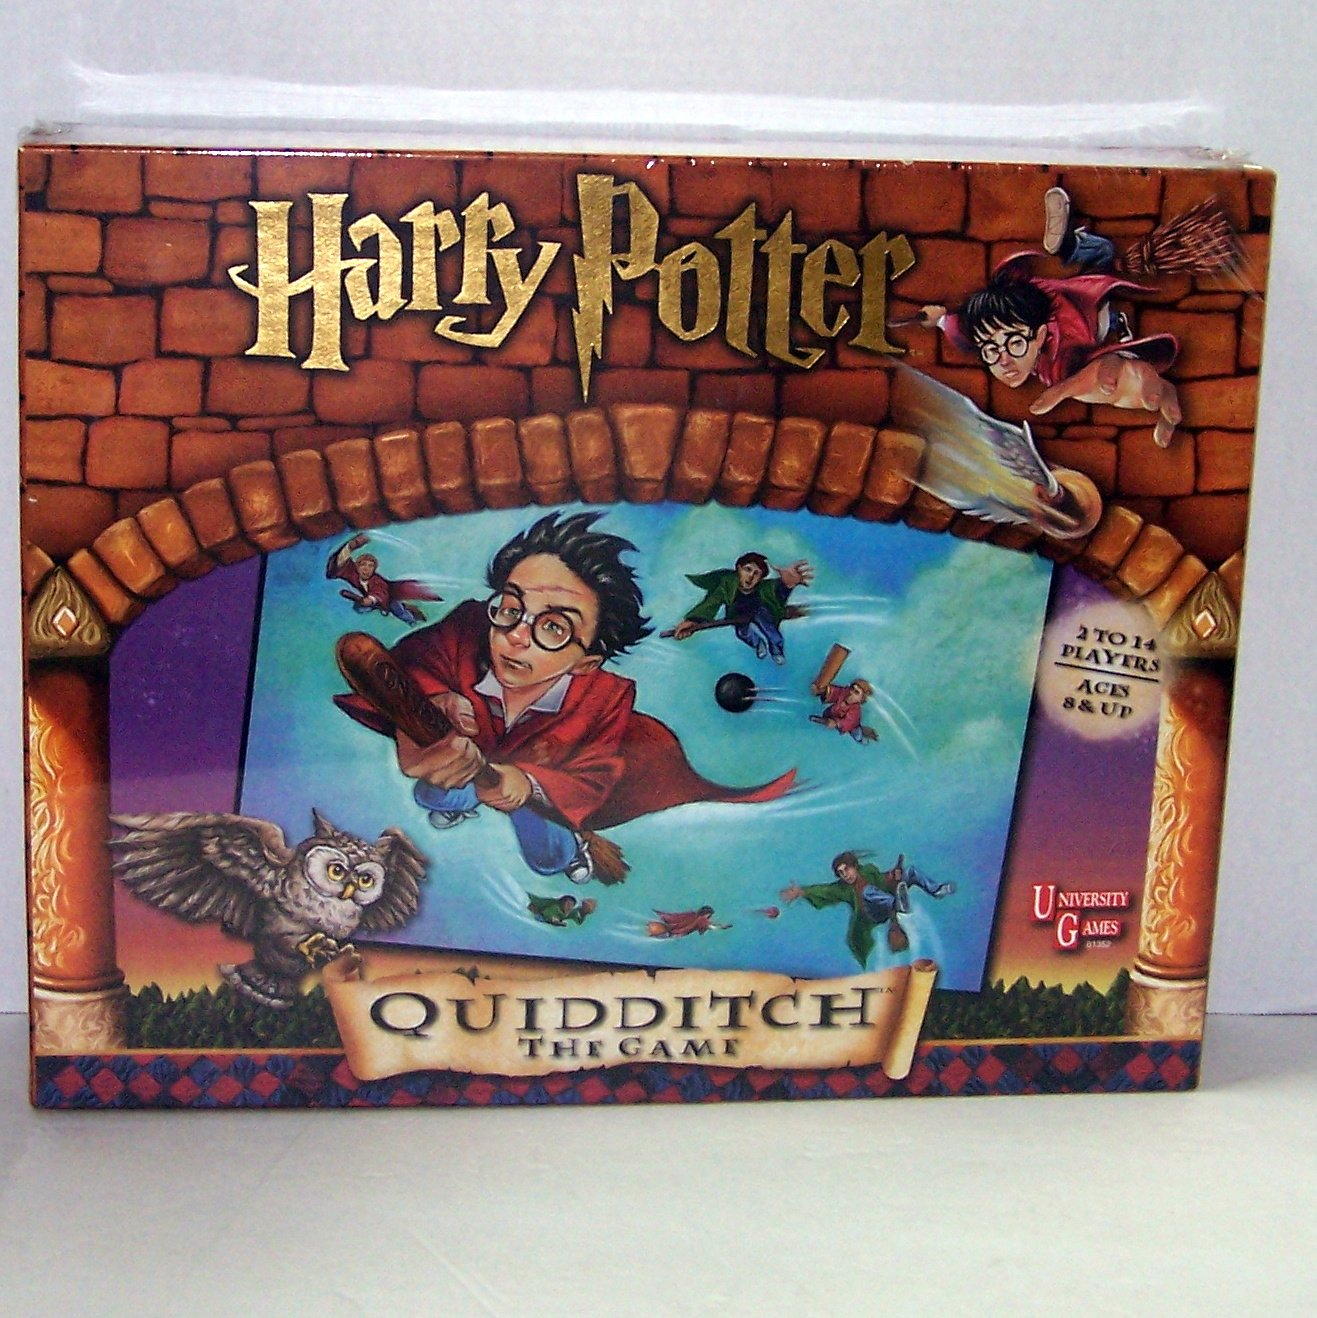 Harry Potter and the Sorcerer's Stone Quidditch The Game